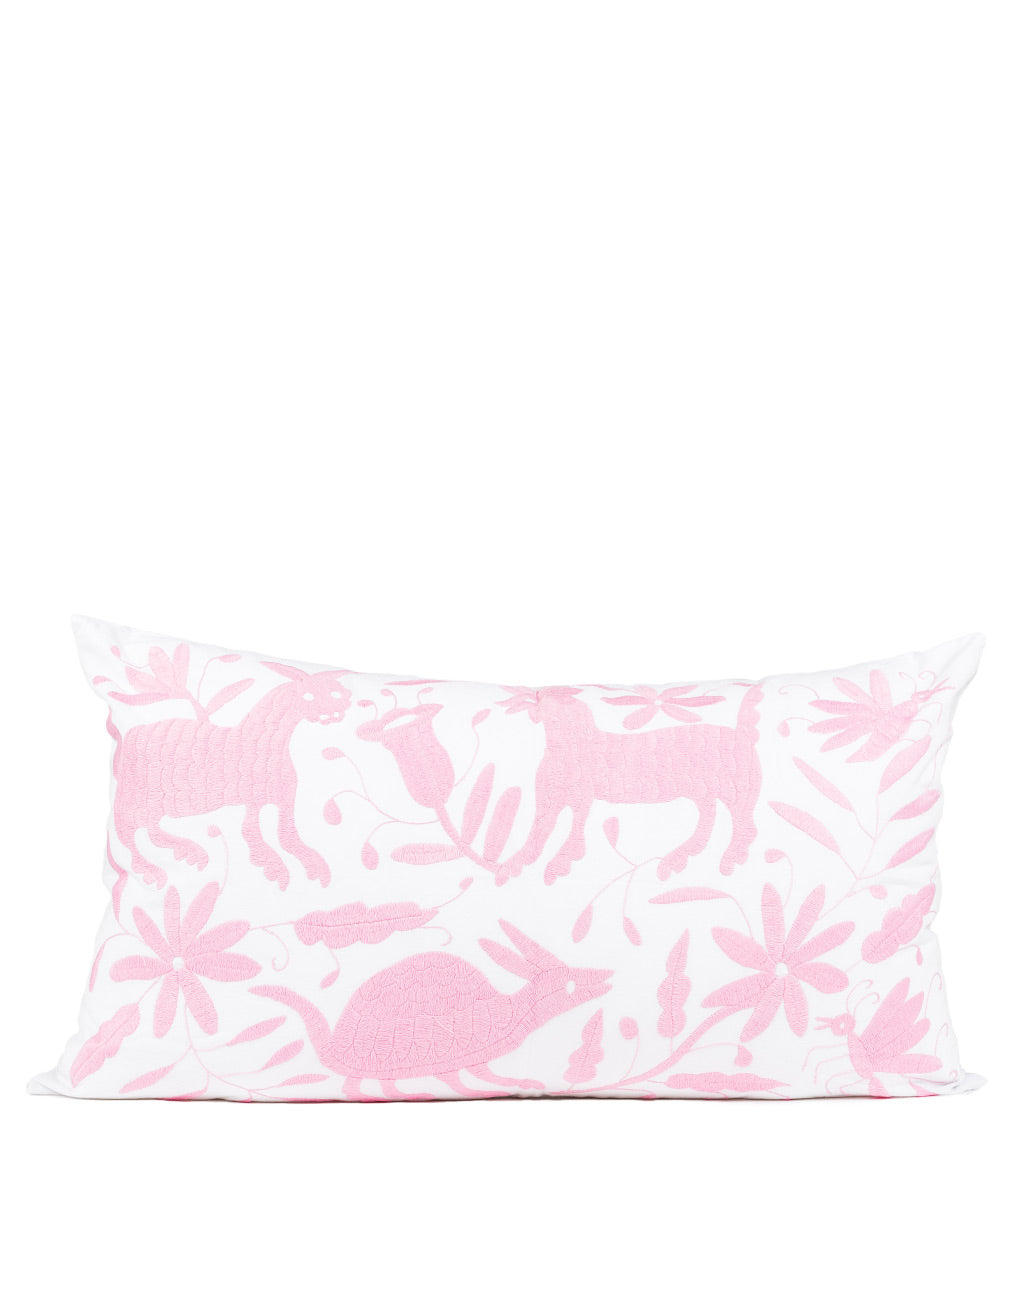 Tenango Embroidered Pillow Cover - Pink